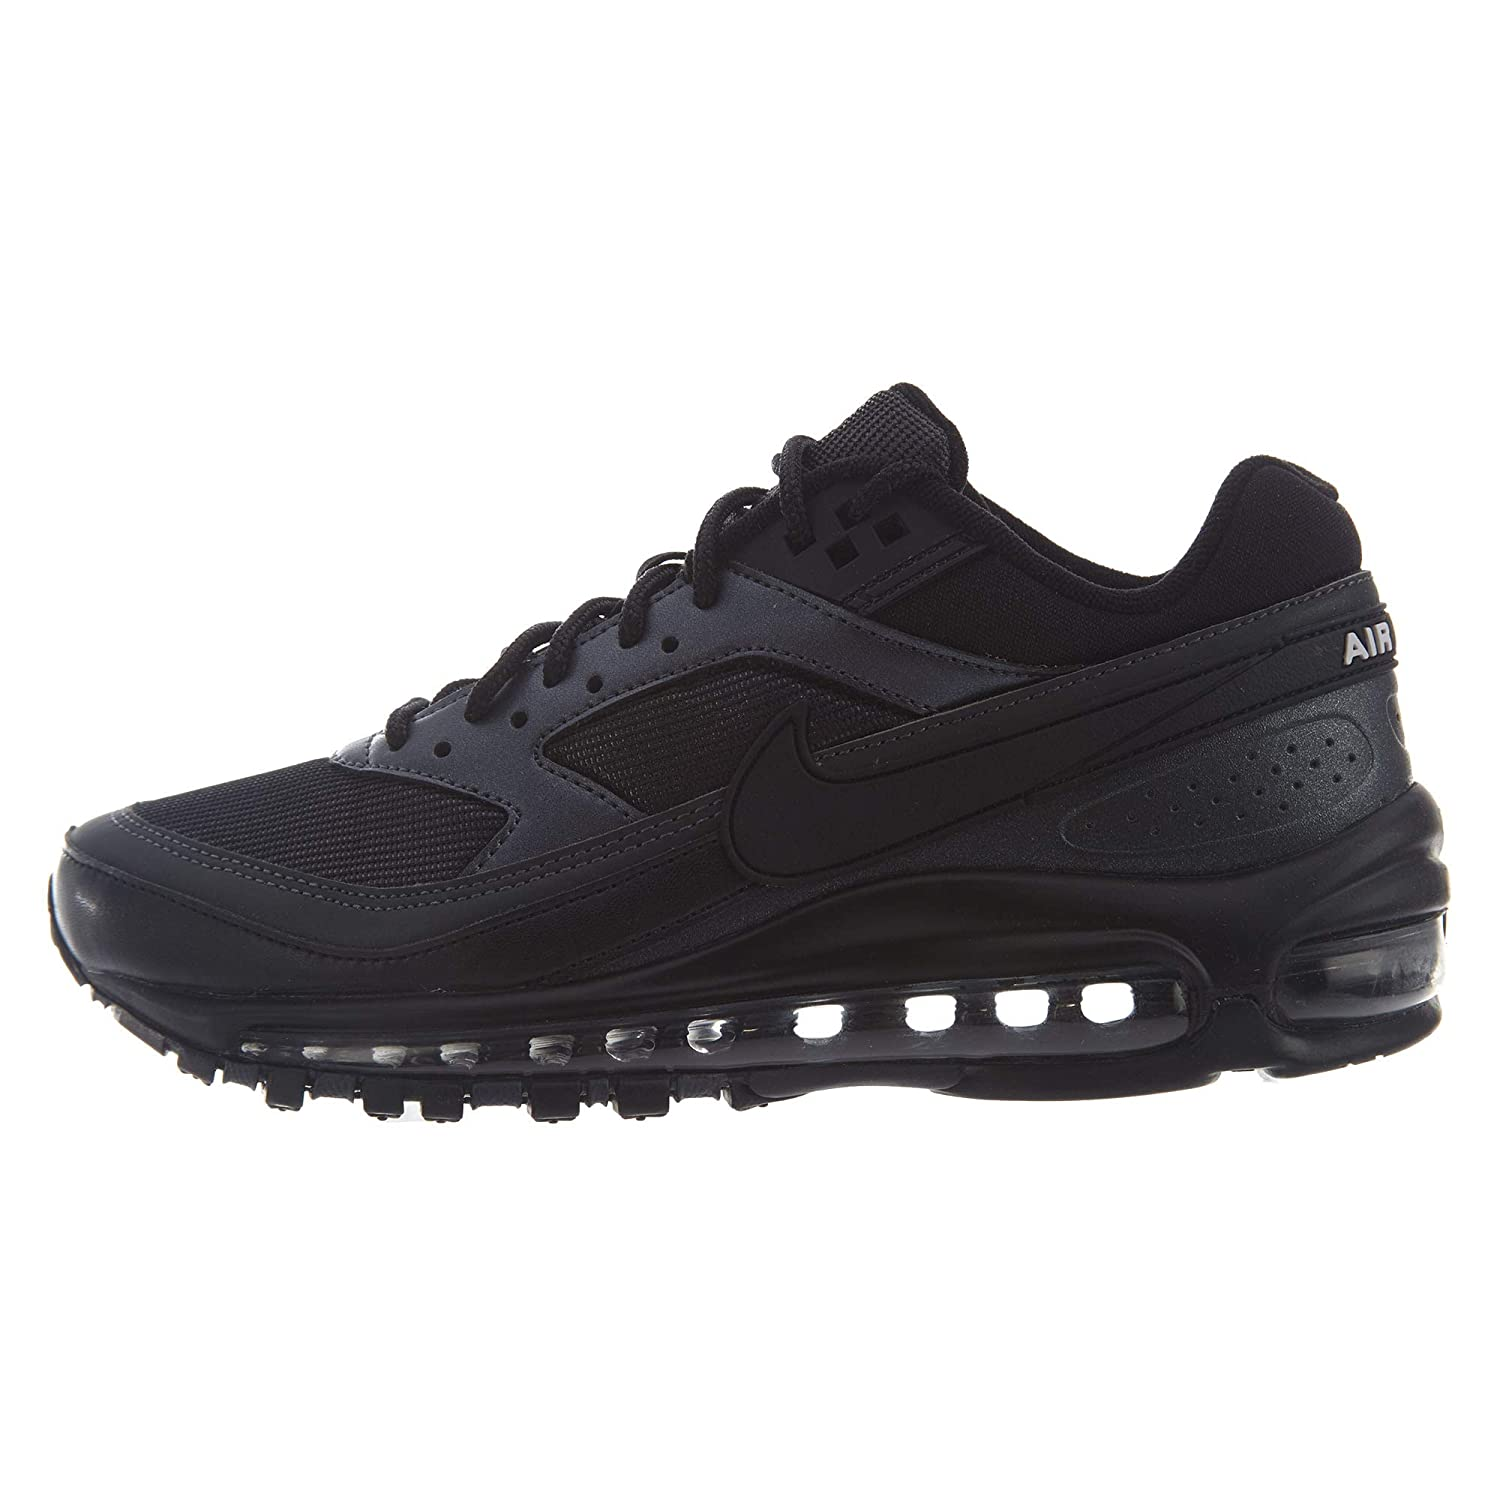 new styles 99a8b 490b8 Amazon.com   Nike Air Max 90 Mens Running Shoes   Road Running